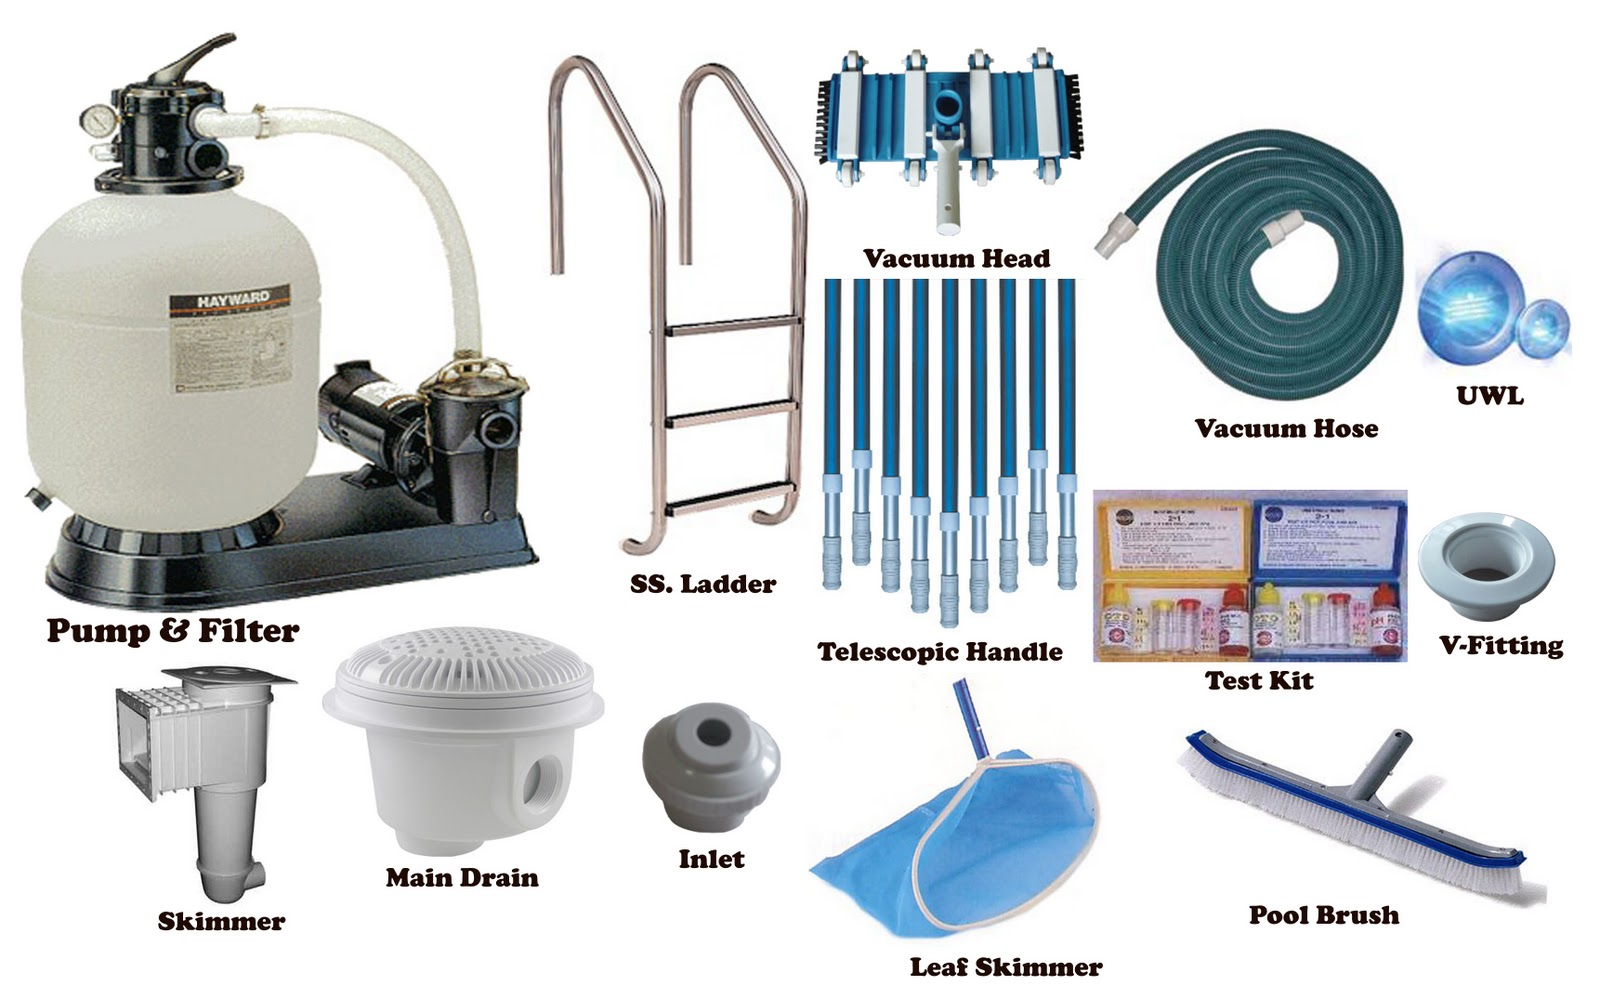 Pool Accessories and Parts for You